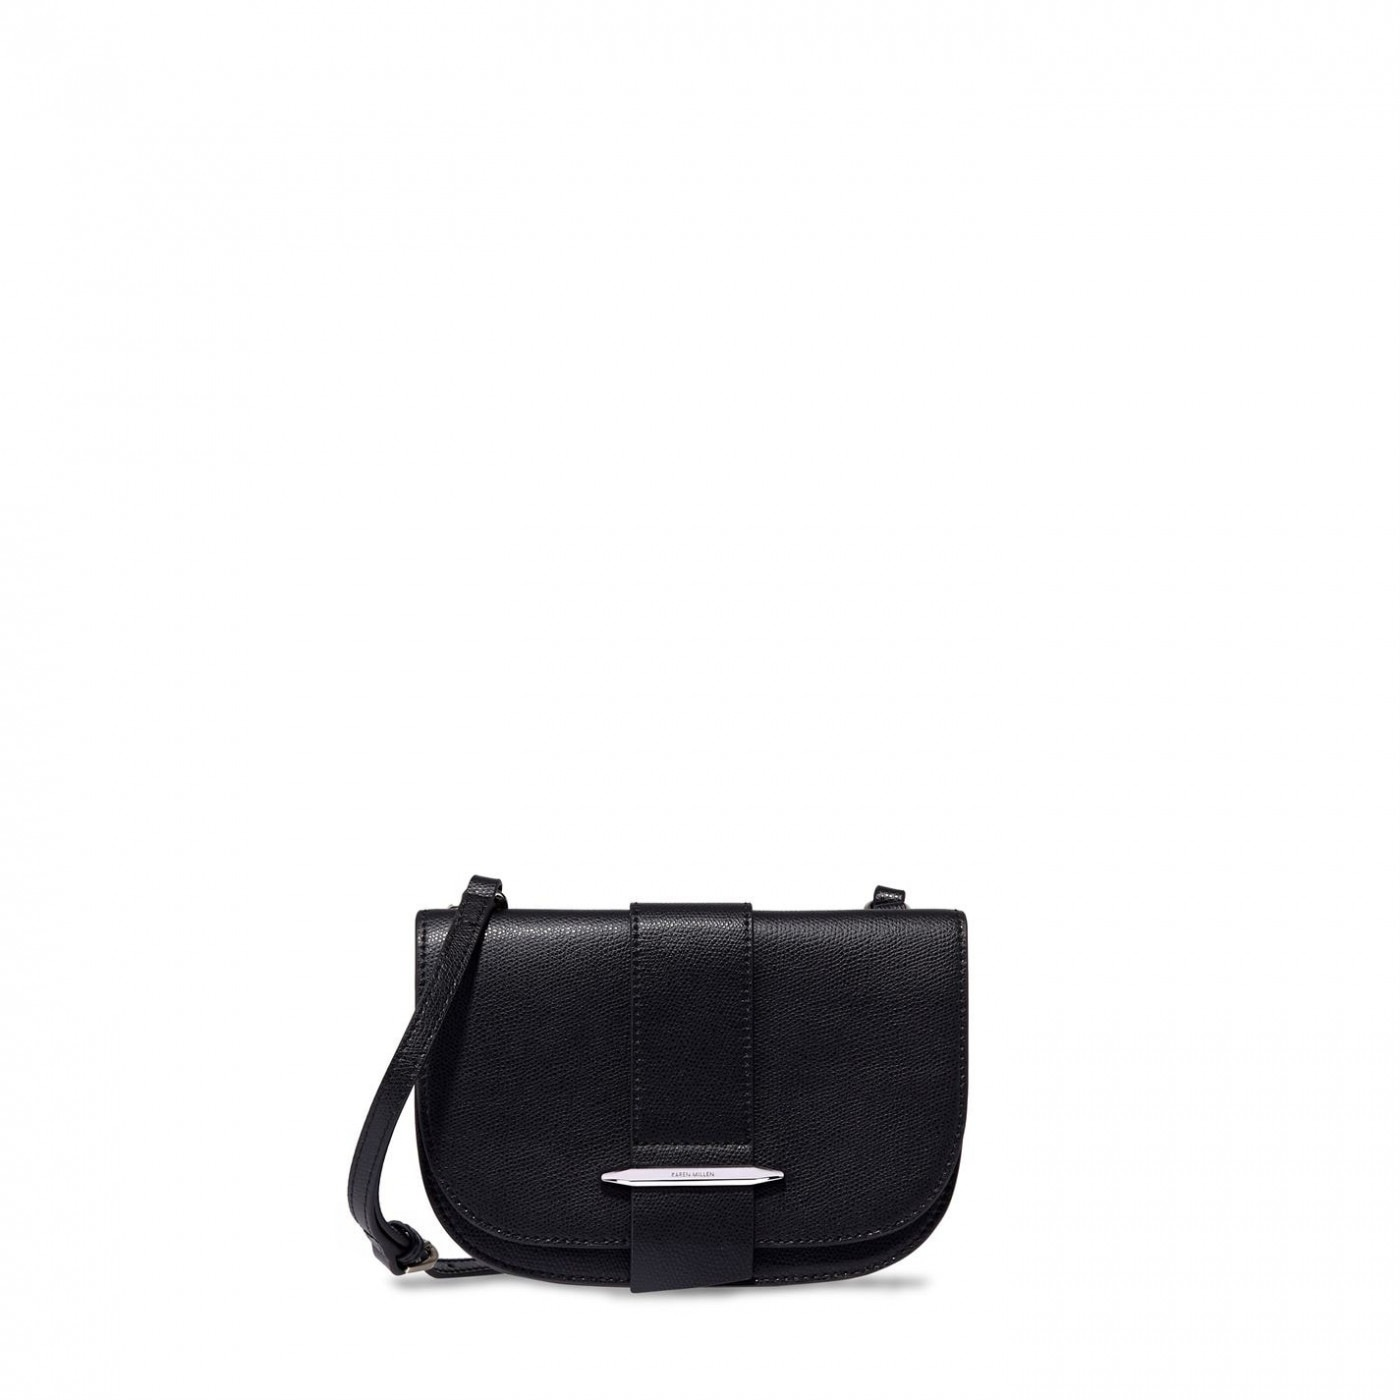 Karen Millen Manhattan Mini Crossbody Bag